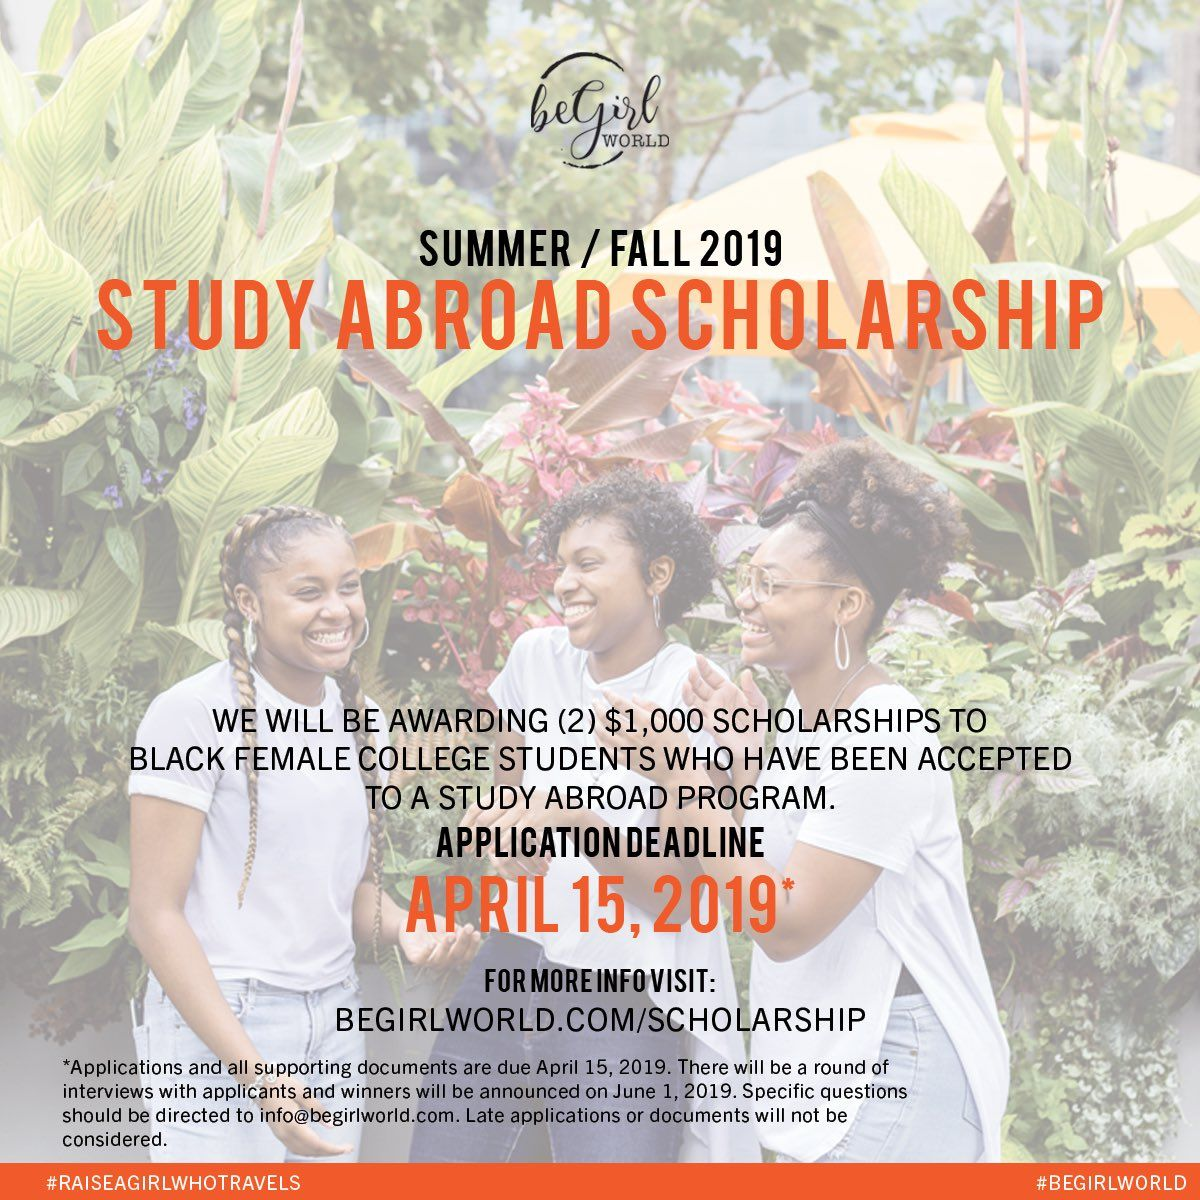 $2,000 scholarships for black female college students who